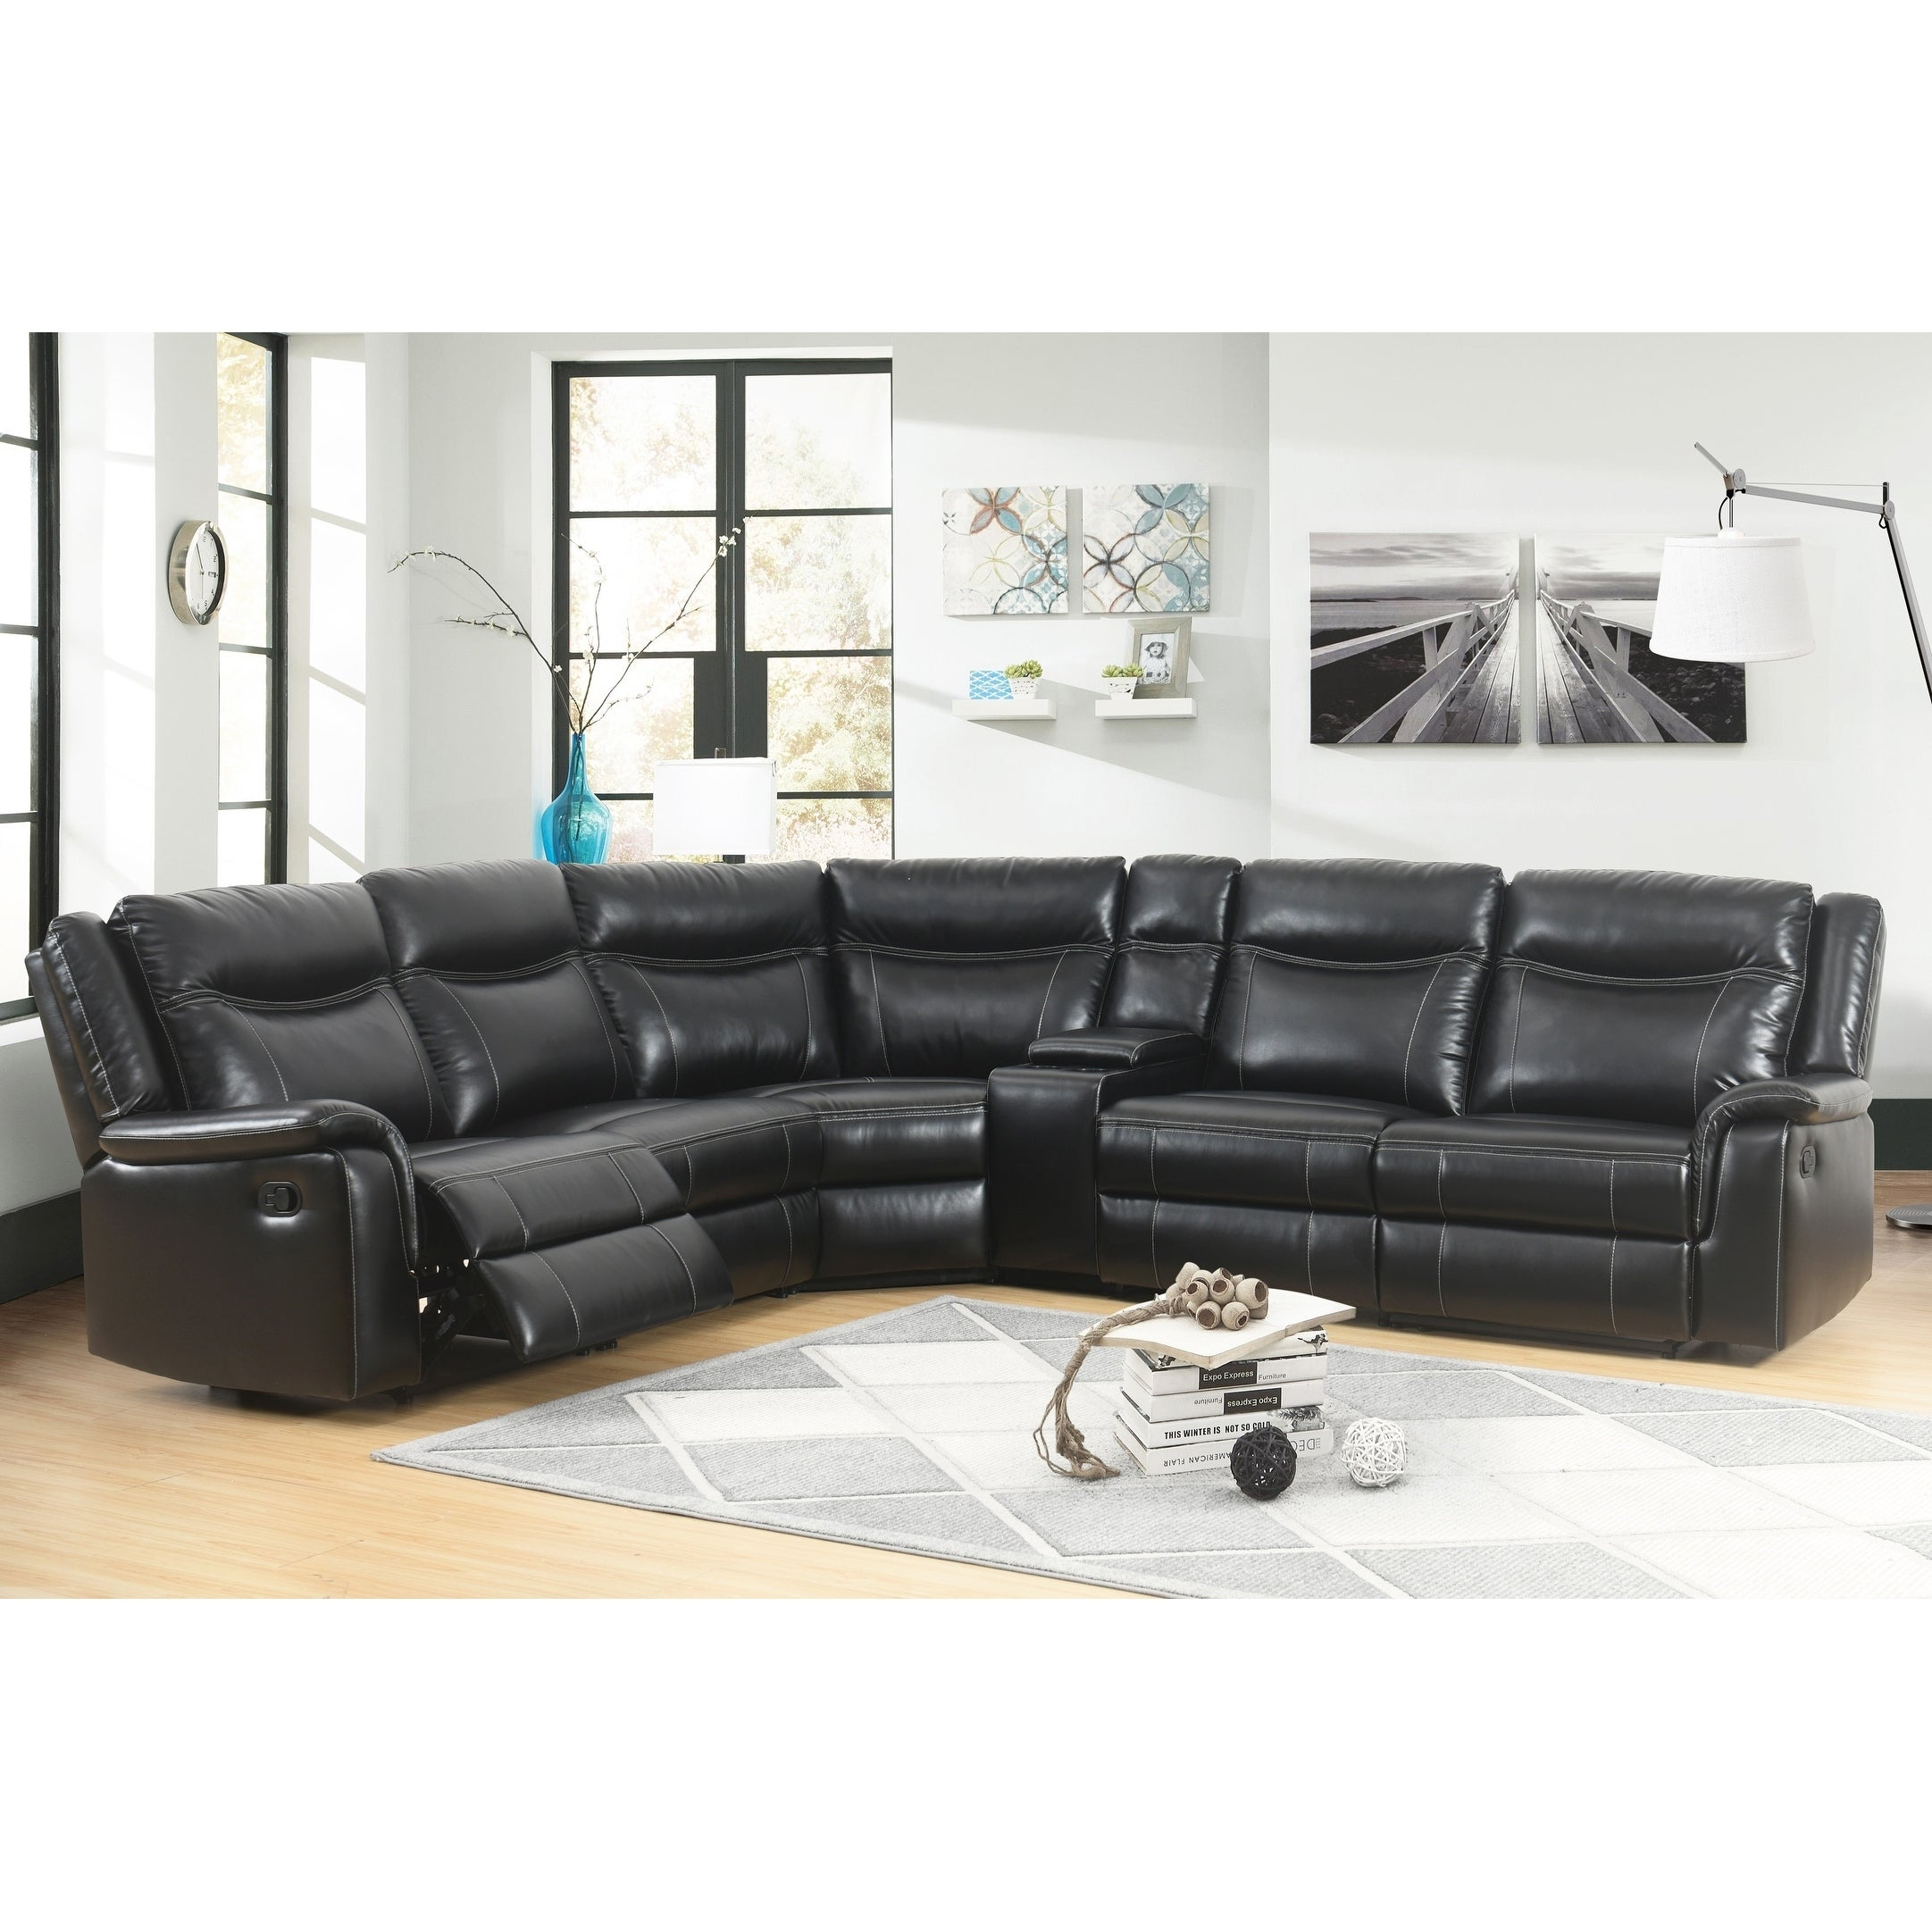 Shop Abbyson Everett Black Reclining Sectional With Console On